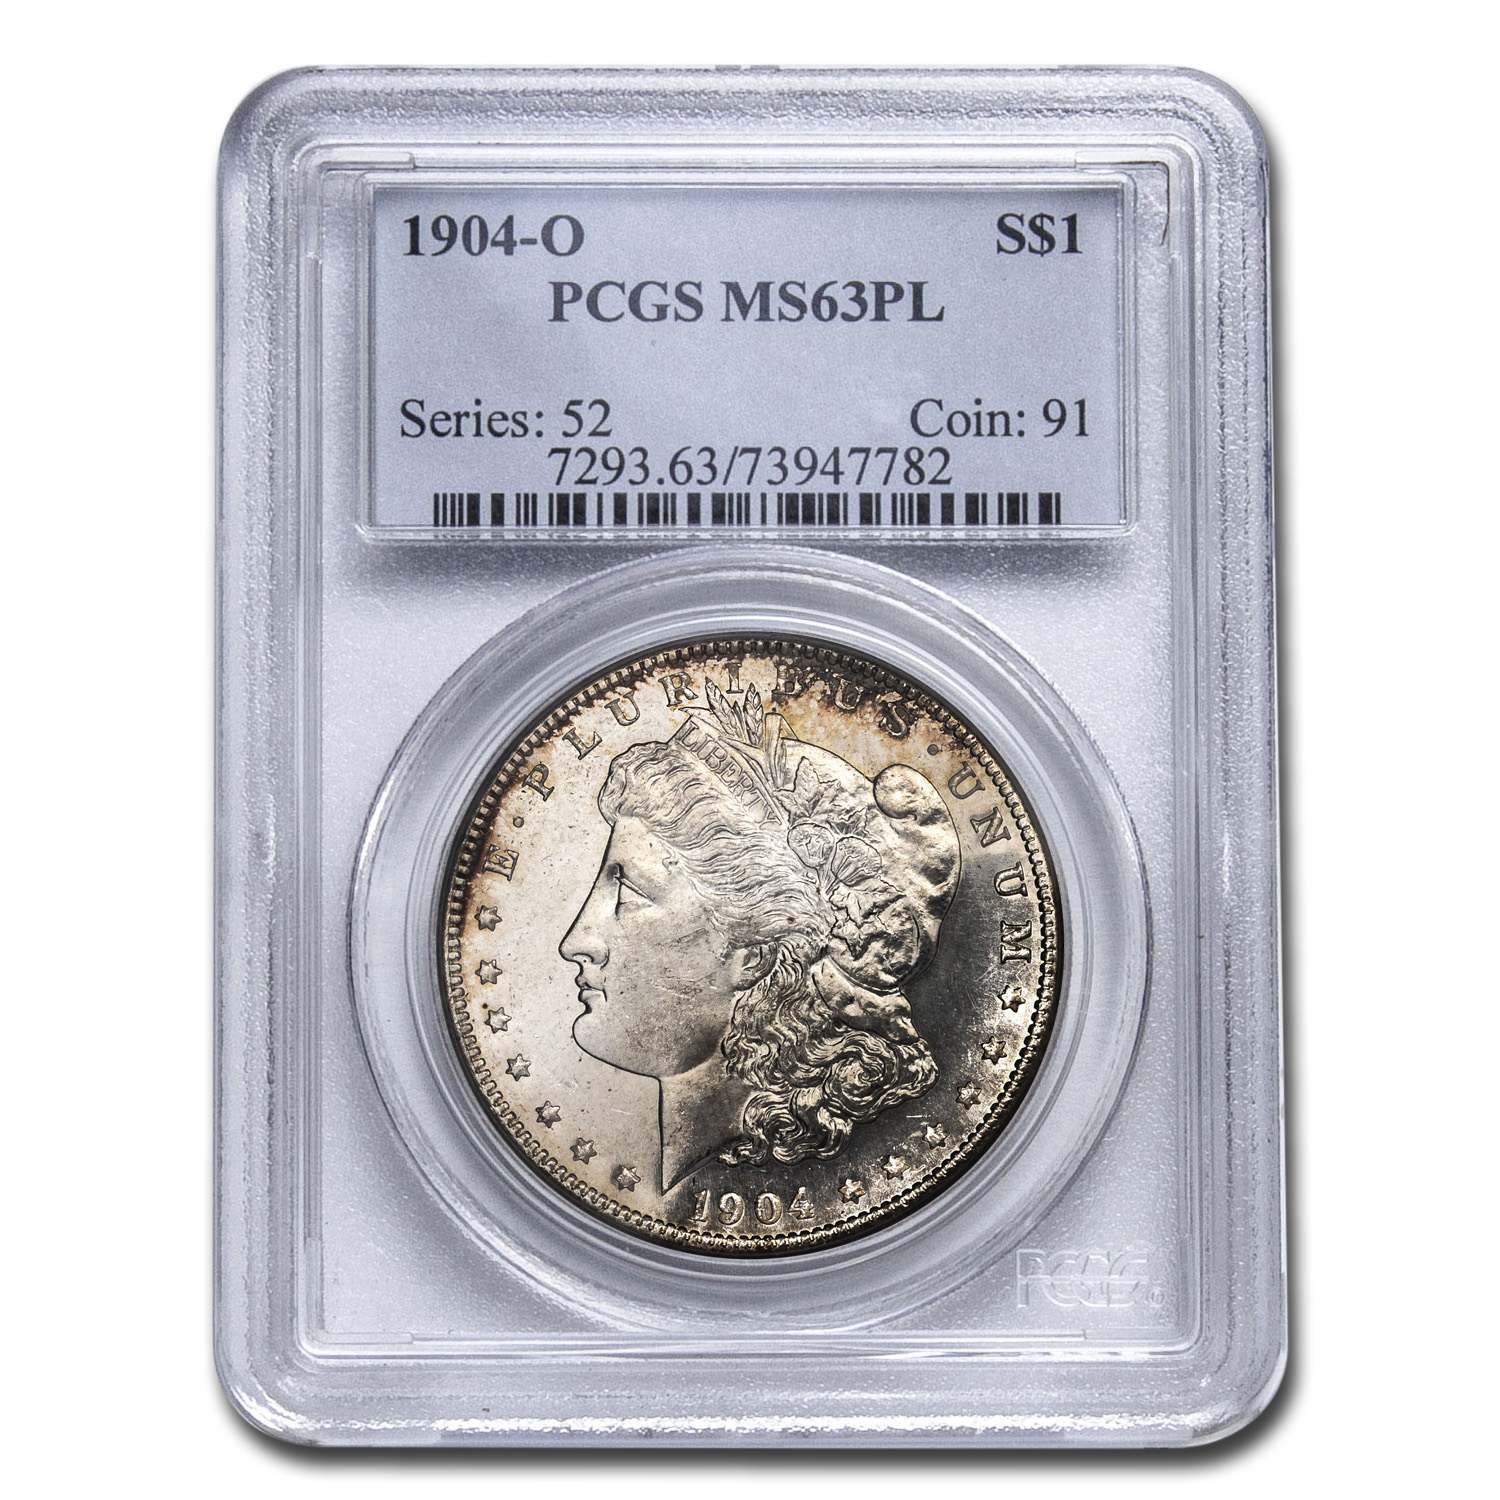 1904-O Morgan Dollar - MS-63 PL Proof Like PCGS